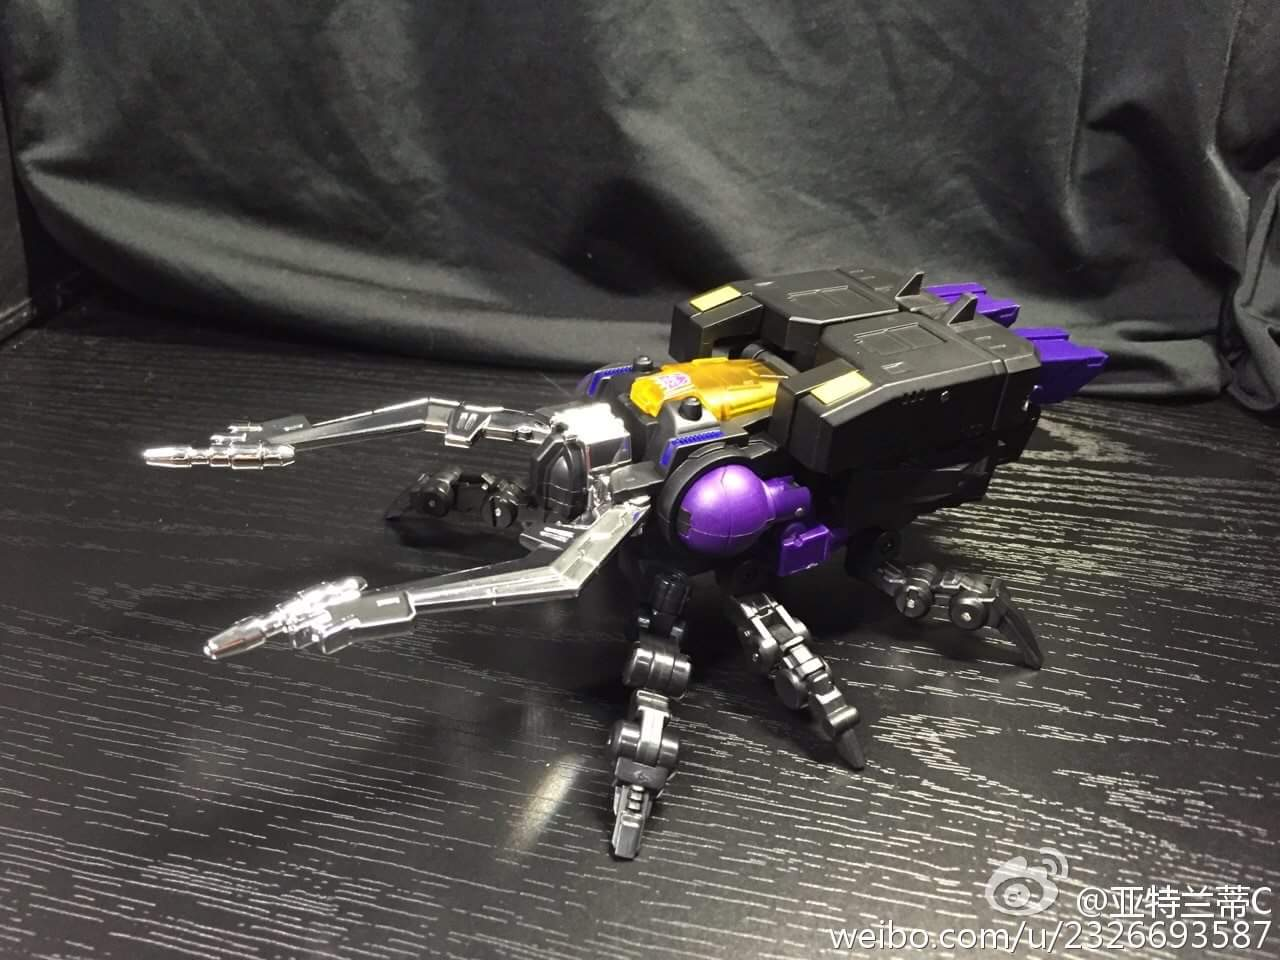 [Fanstoys] Produit Tiers - Jouet FT-12 Grenadier / FT-13 Mercenary / FT-14 Forager - aka Insecticons - Page 3 Pfc1xU35